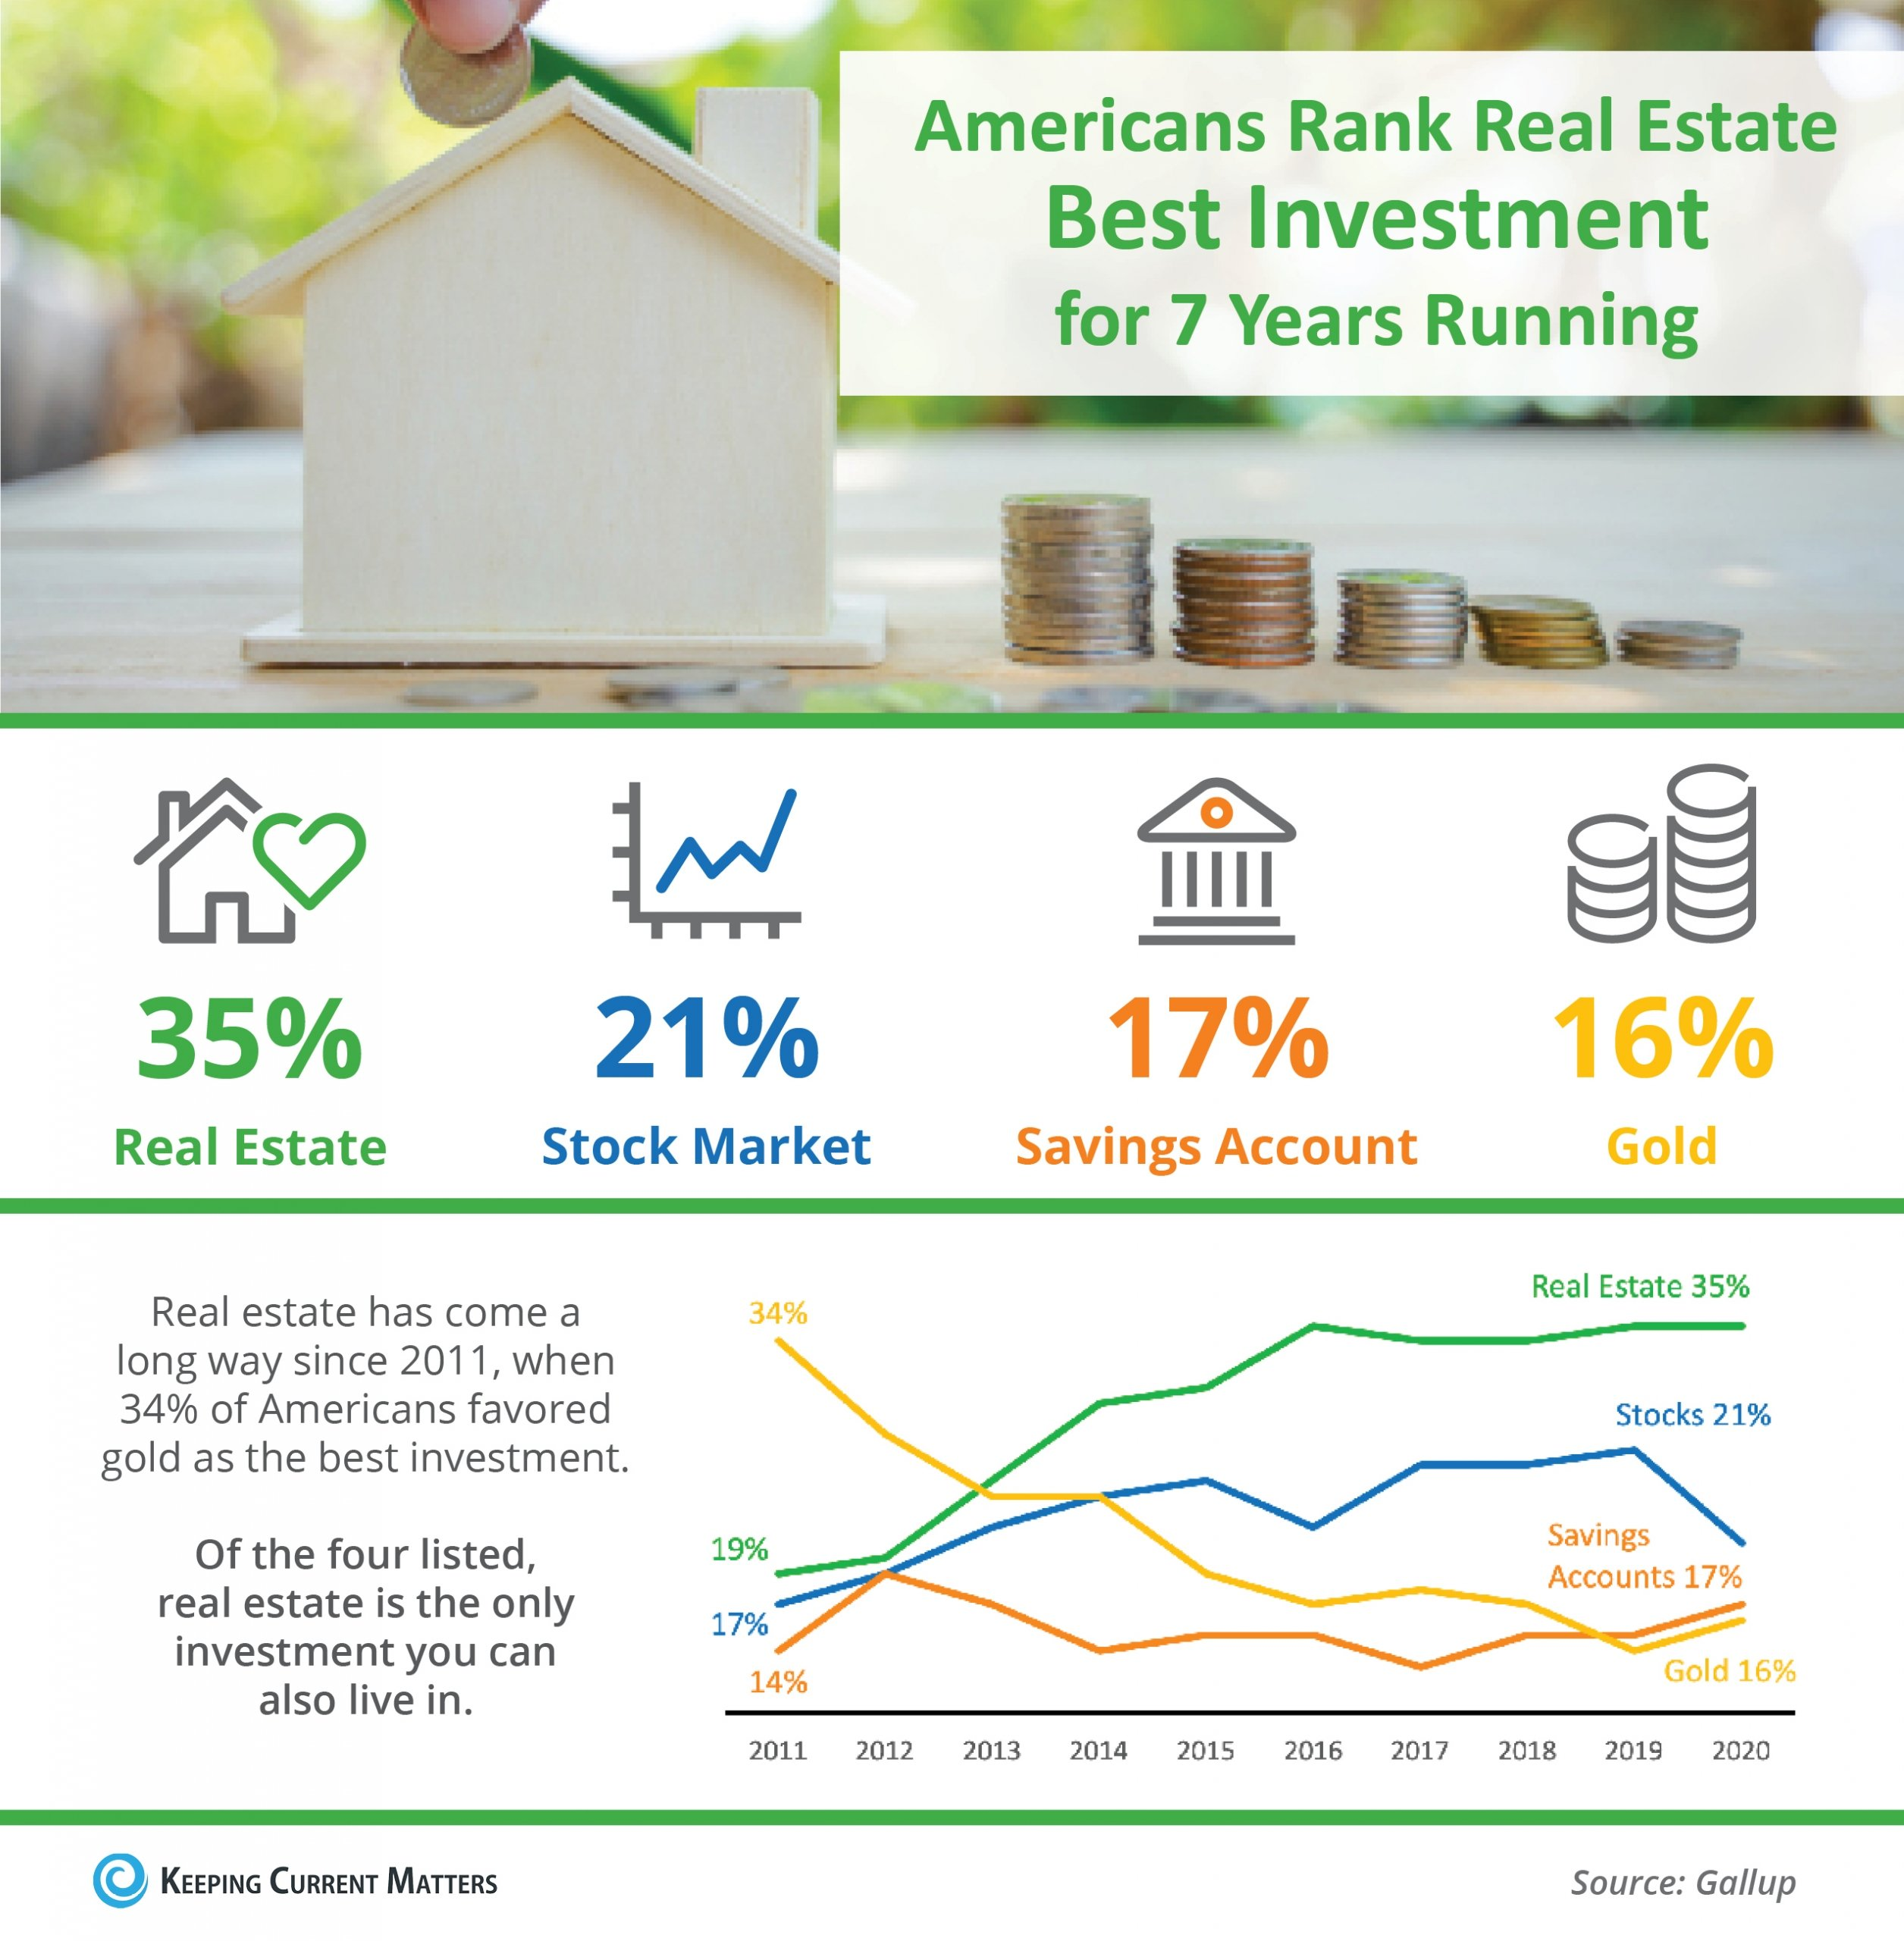 Americans Rank Real Estate Best Investment for 7 Years Running [INFOGRAPHIC] | Keeping Current Matters